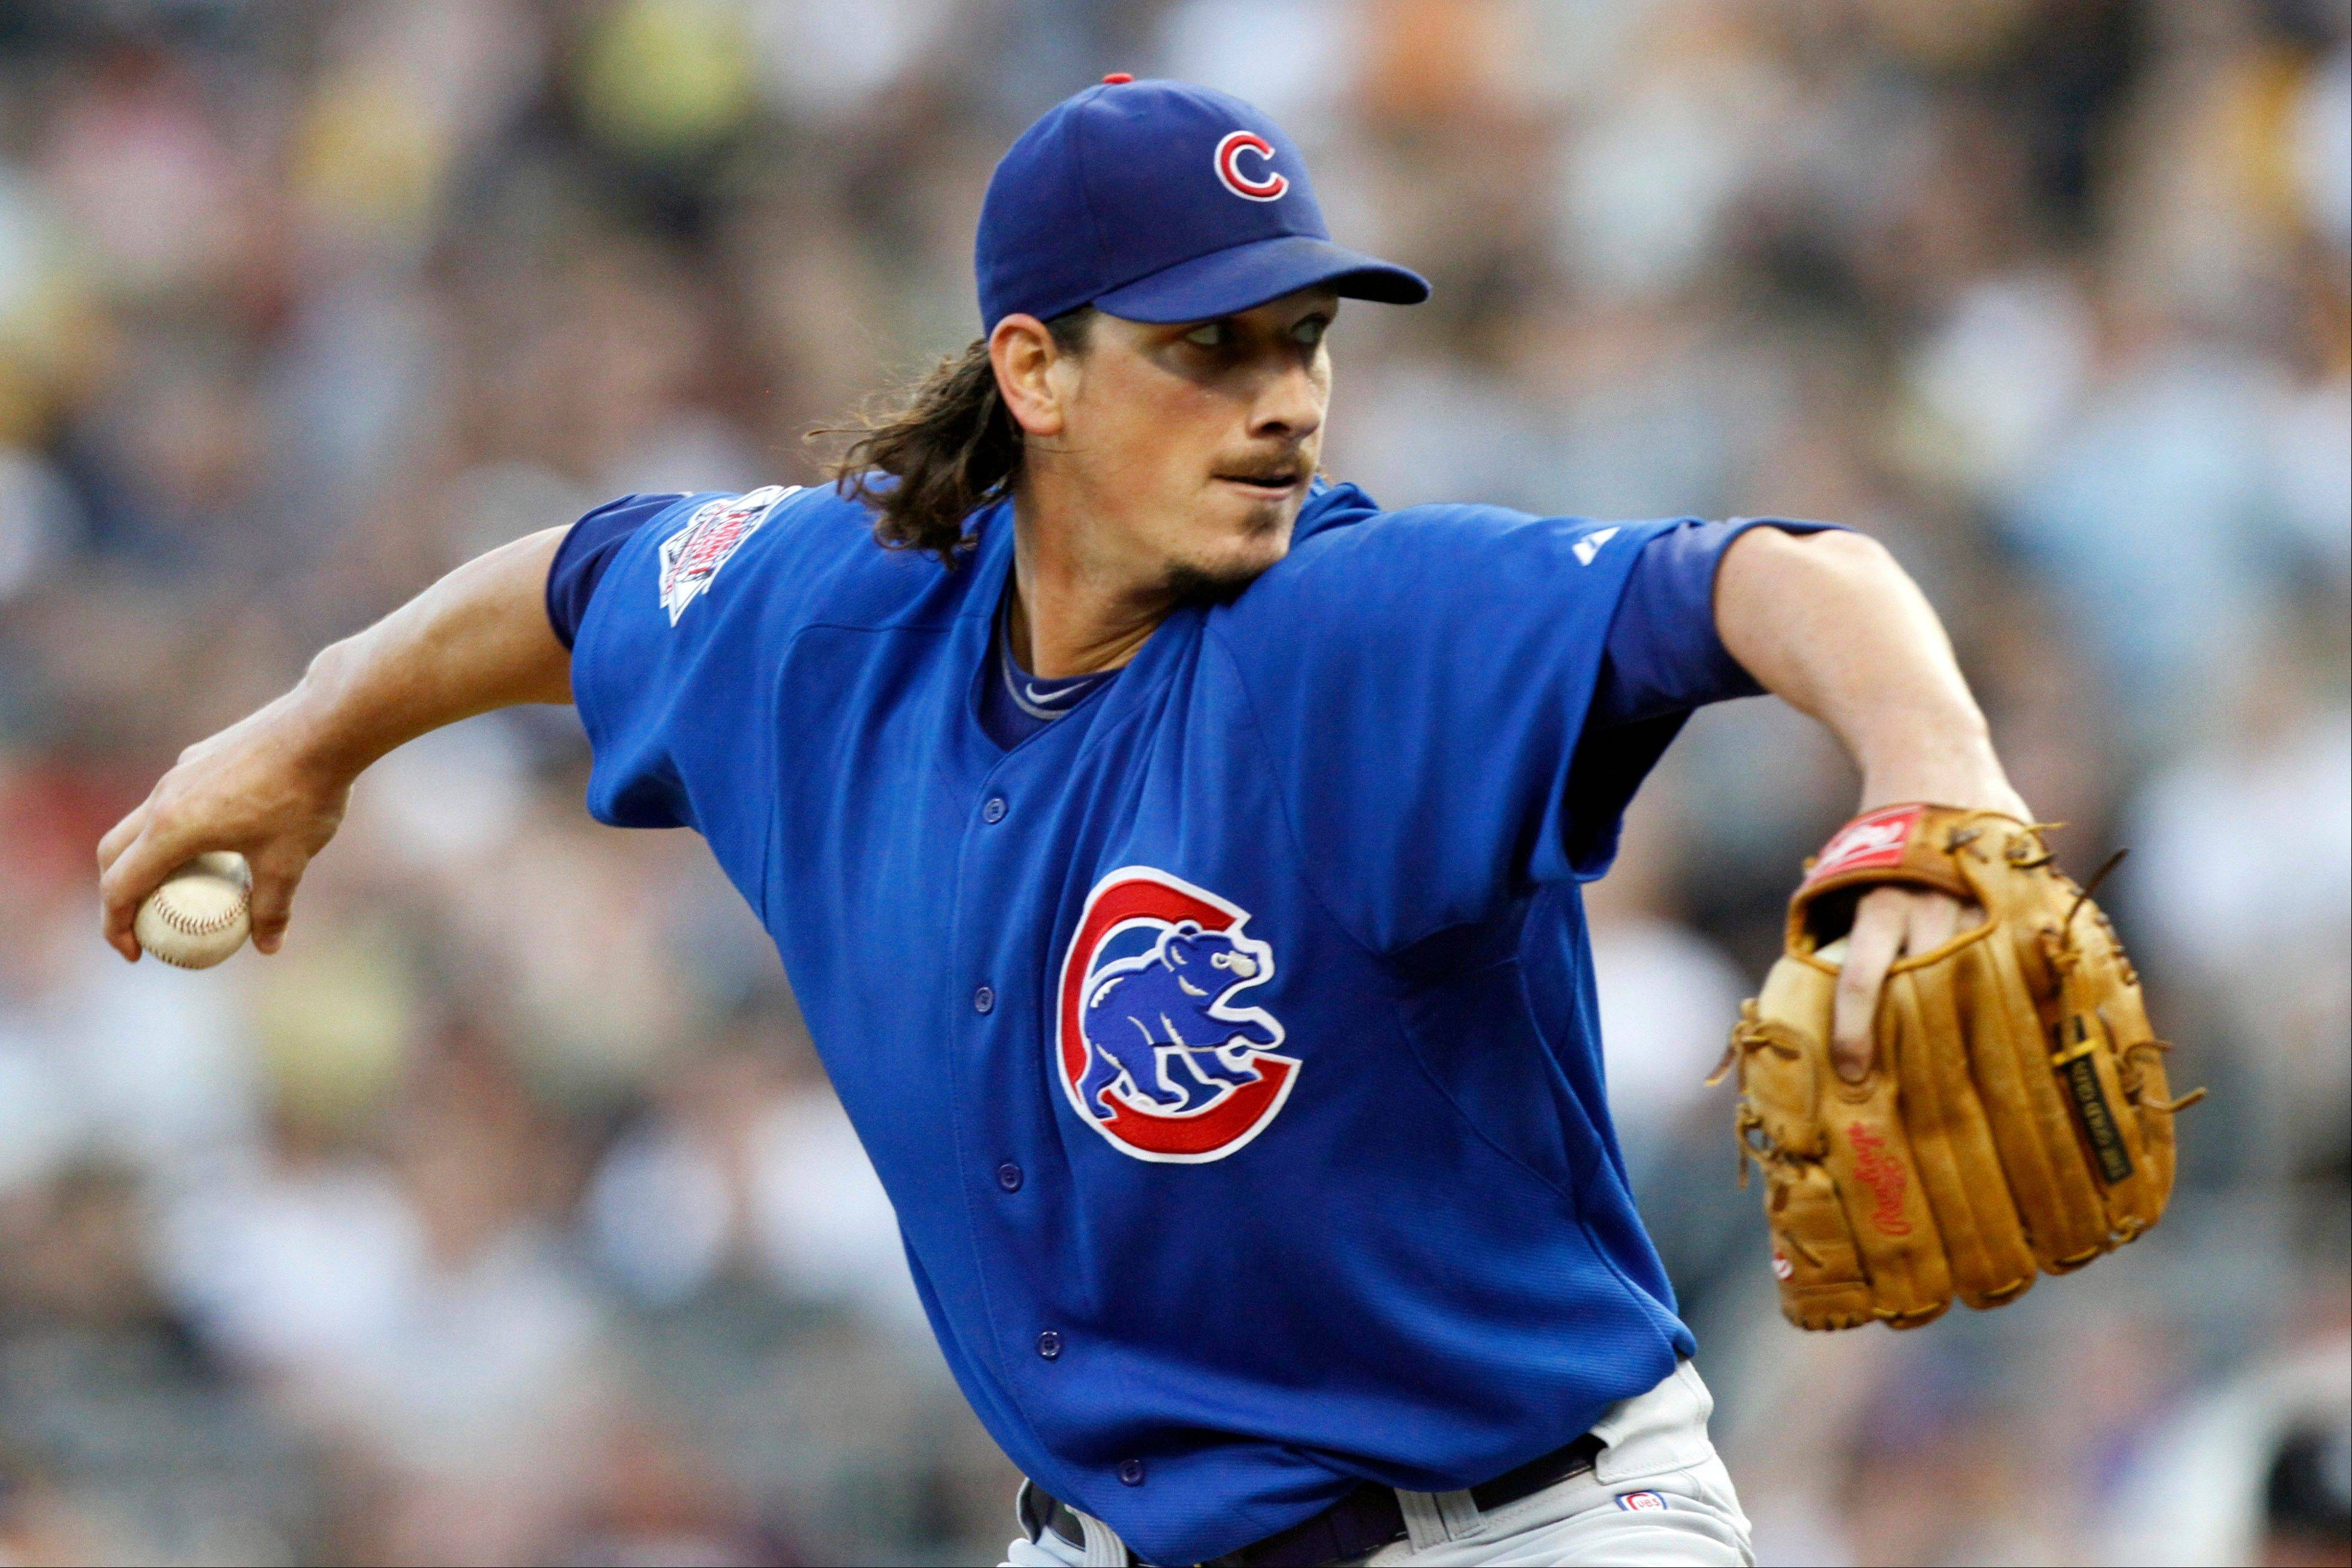 The emergence of starting pitcher Jeff Samardzija was one of the highlights of the season, says Cubs broadcaster Len Kasper. Inconsistent hitting hurt, but team defense improved overall.